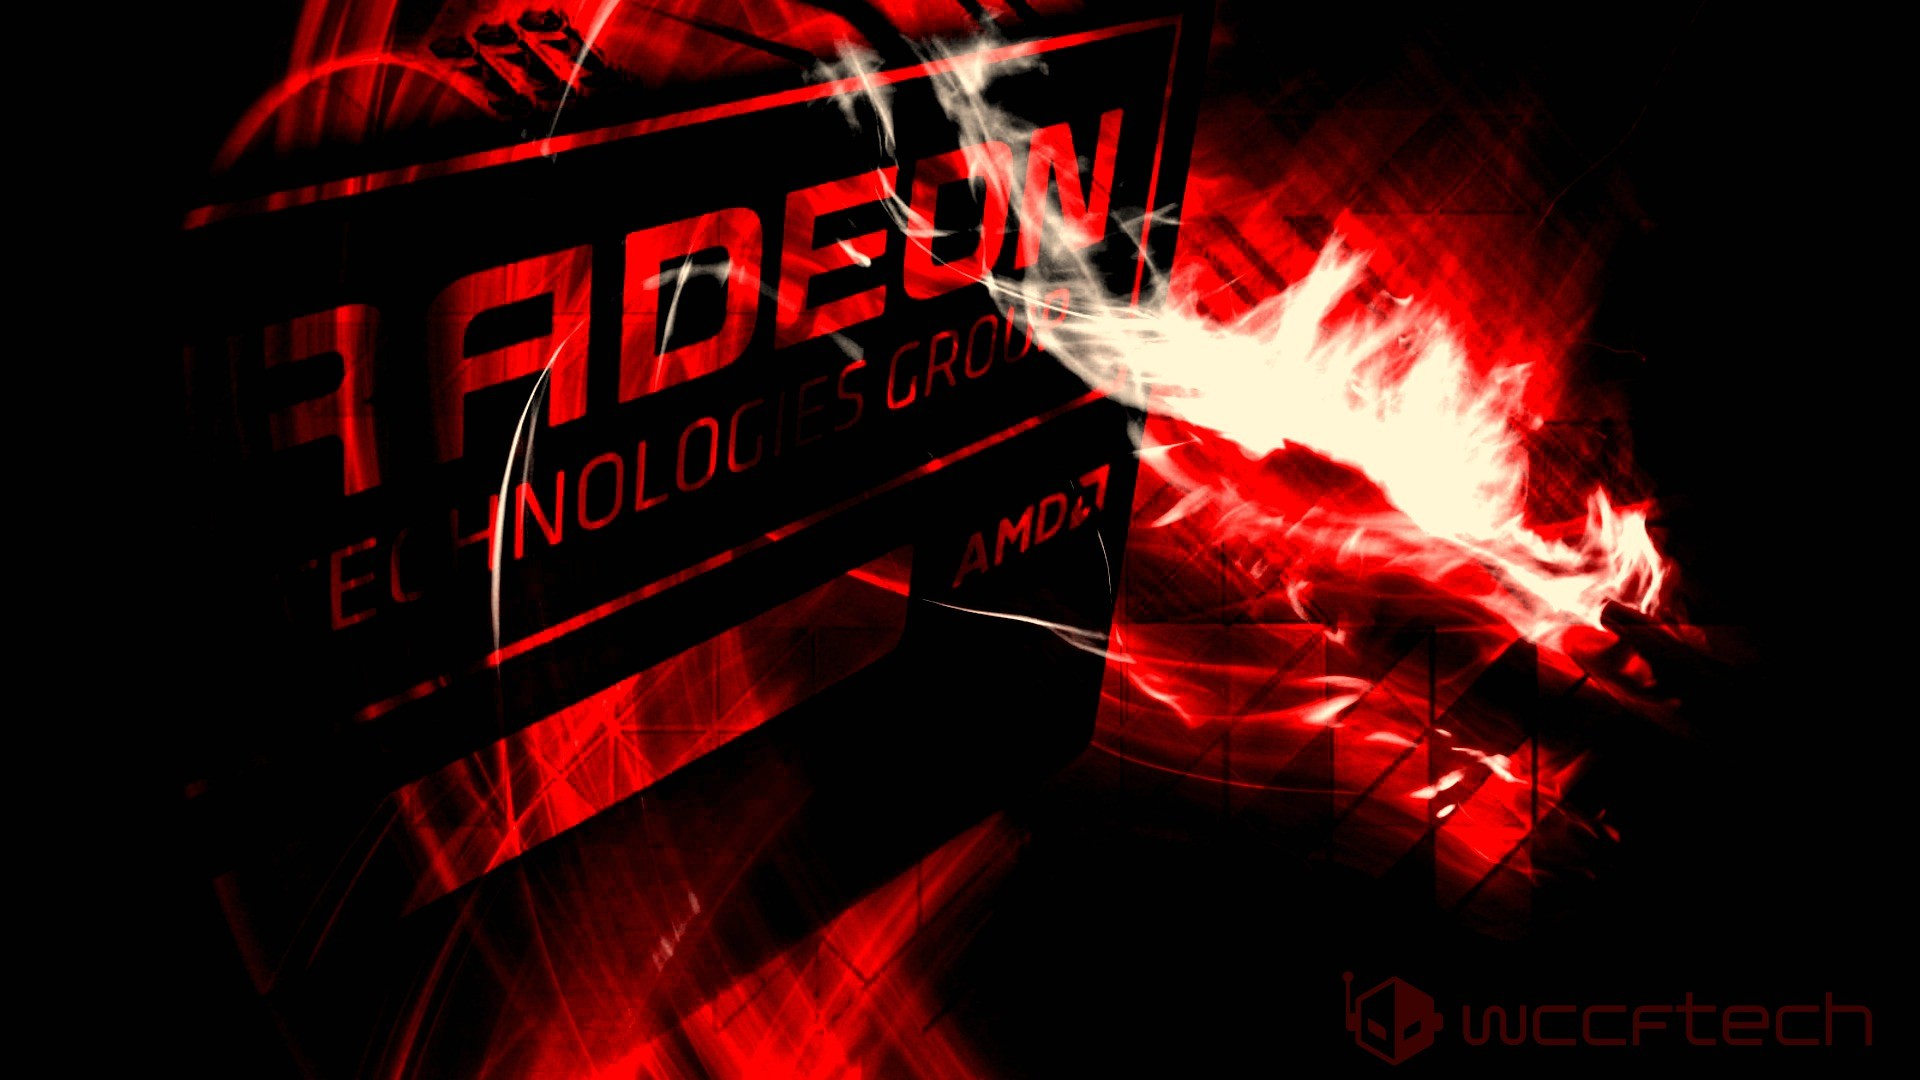 Amd Hd Wallpaper Posted By Sarah Sellers